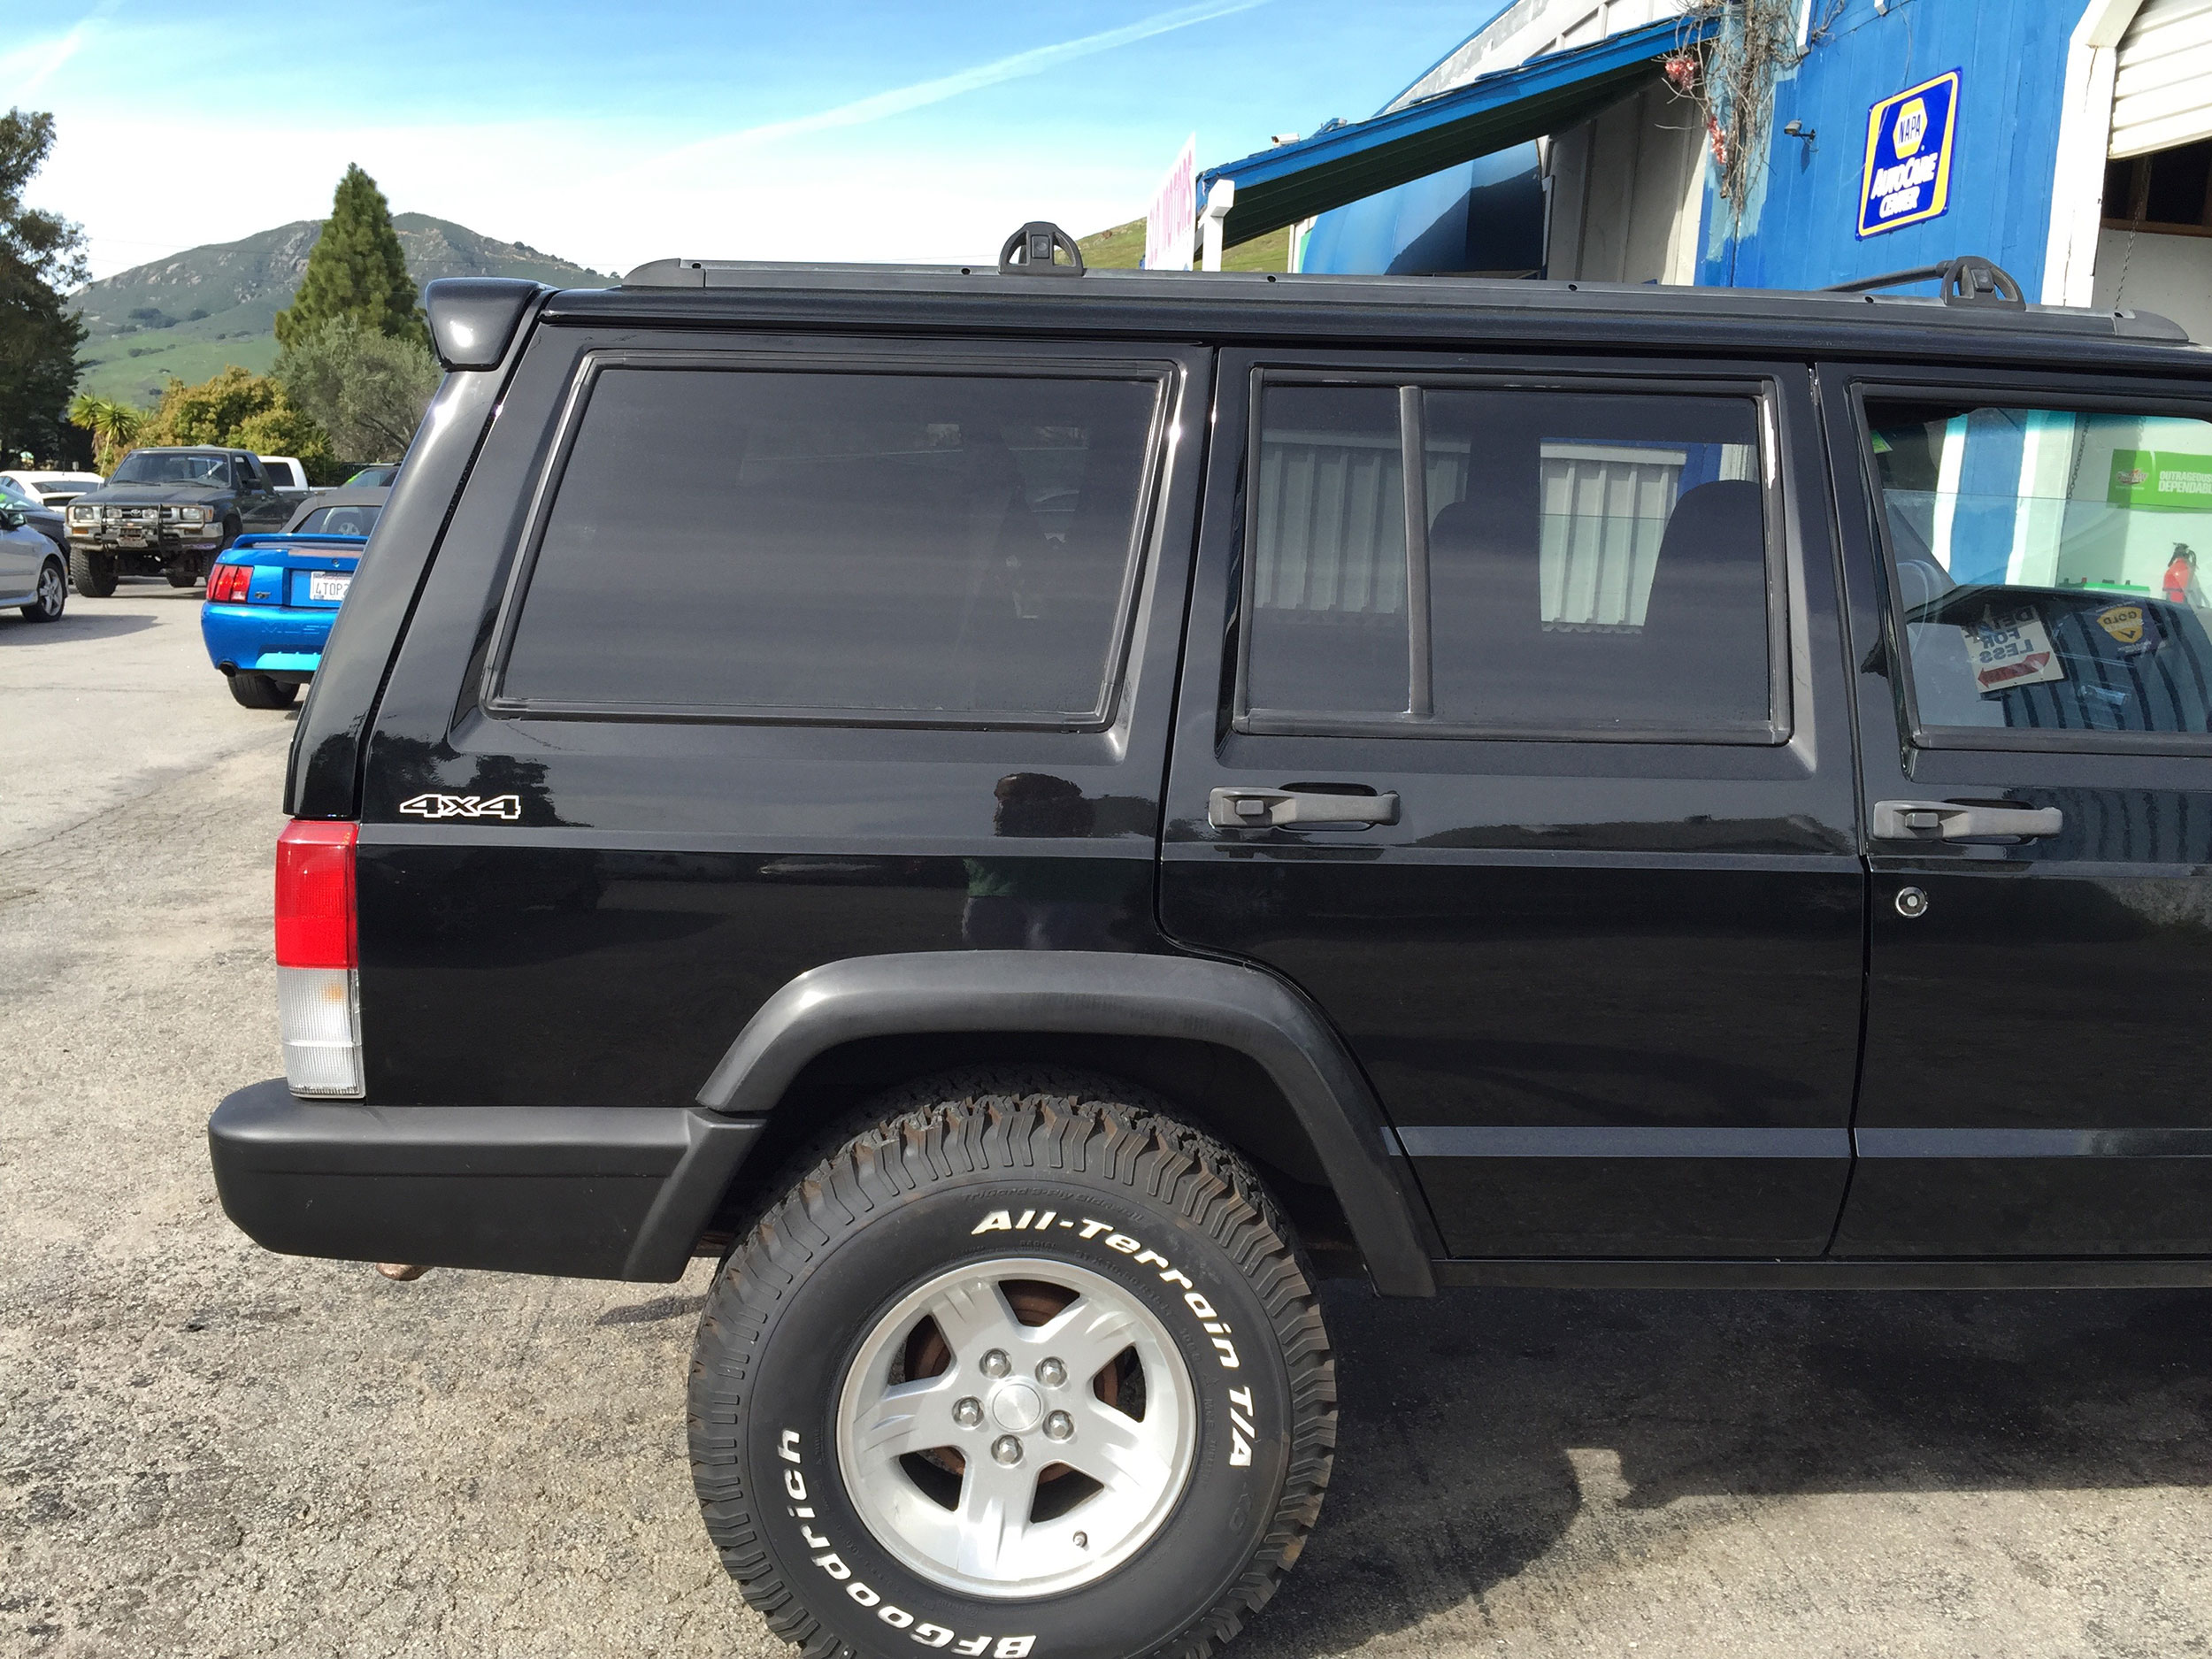 Jeep Cherokee Xj Custom Spoiler And Spoilerlight Type I Cargo Dimentions Search For